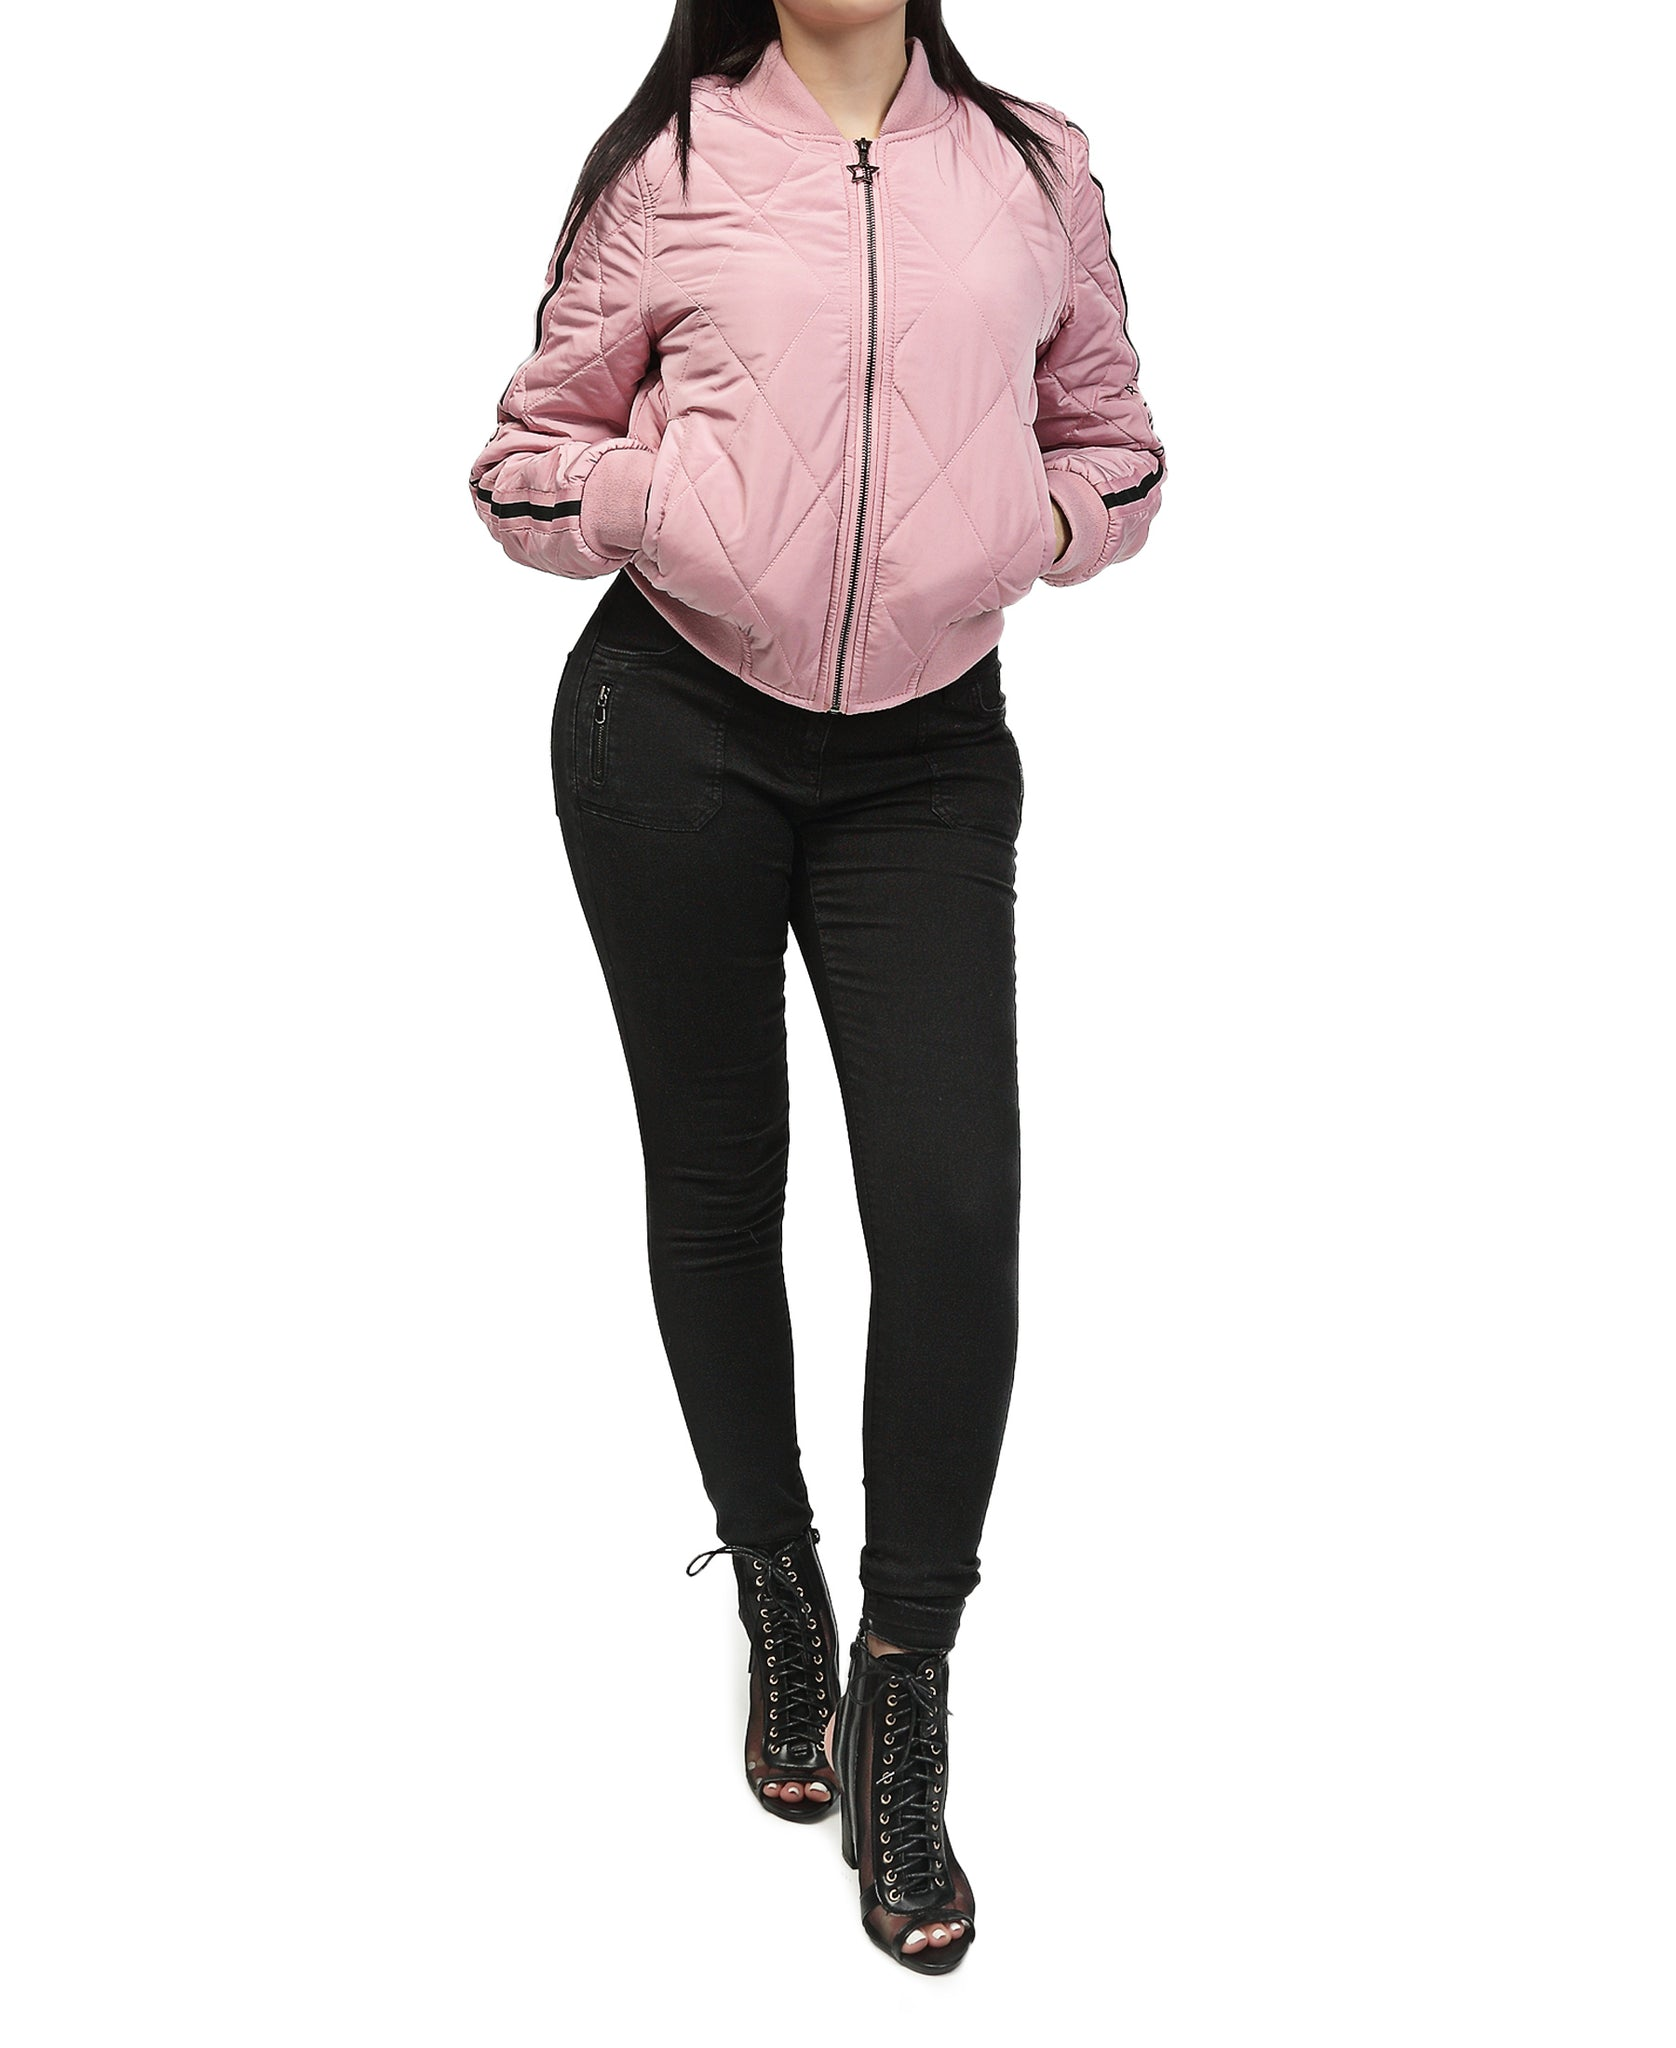 Bellevue Quilted Bomber Jacket - Pink